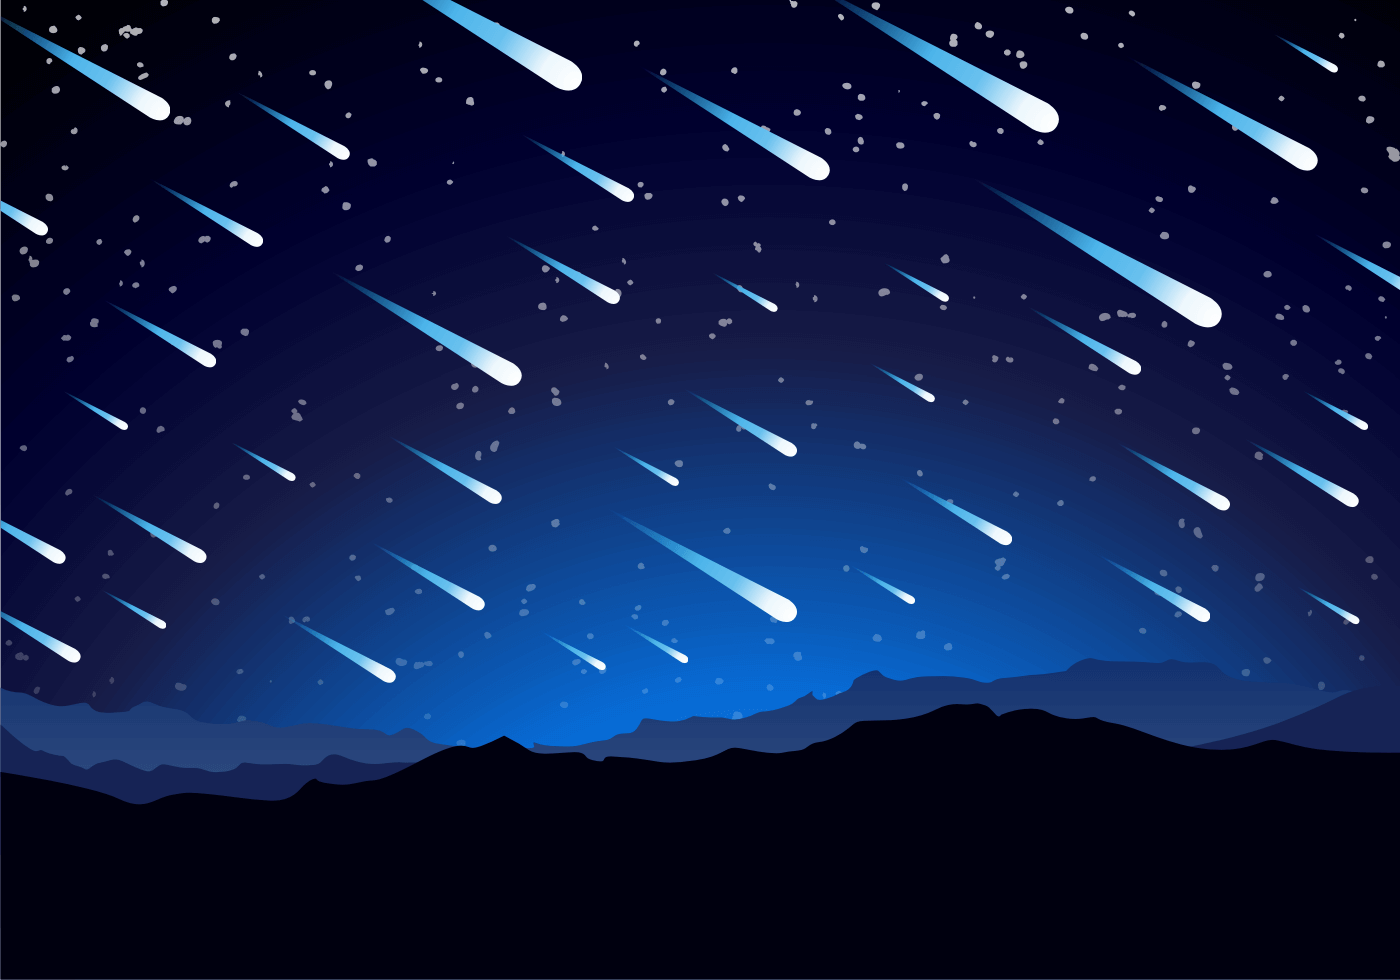 meteor shower background free vector download free shining star clip art in purple background shining star clipart free